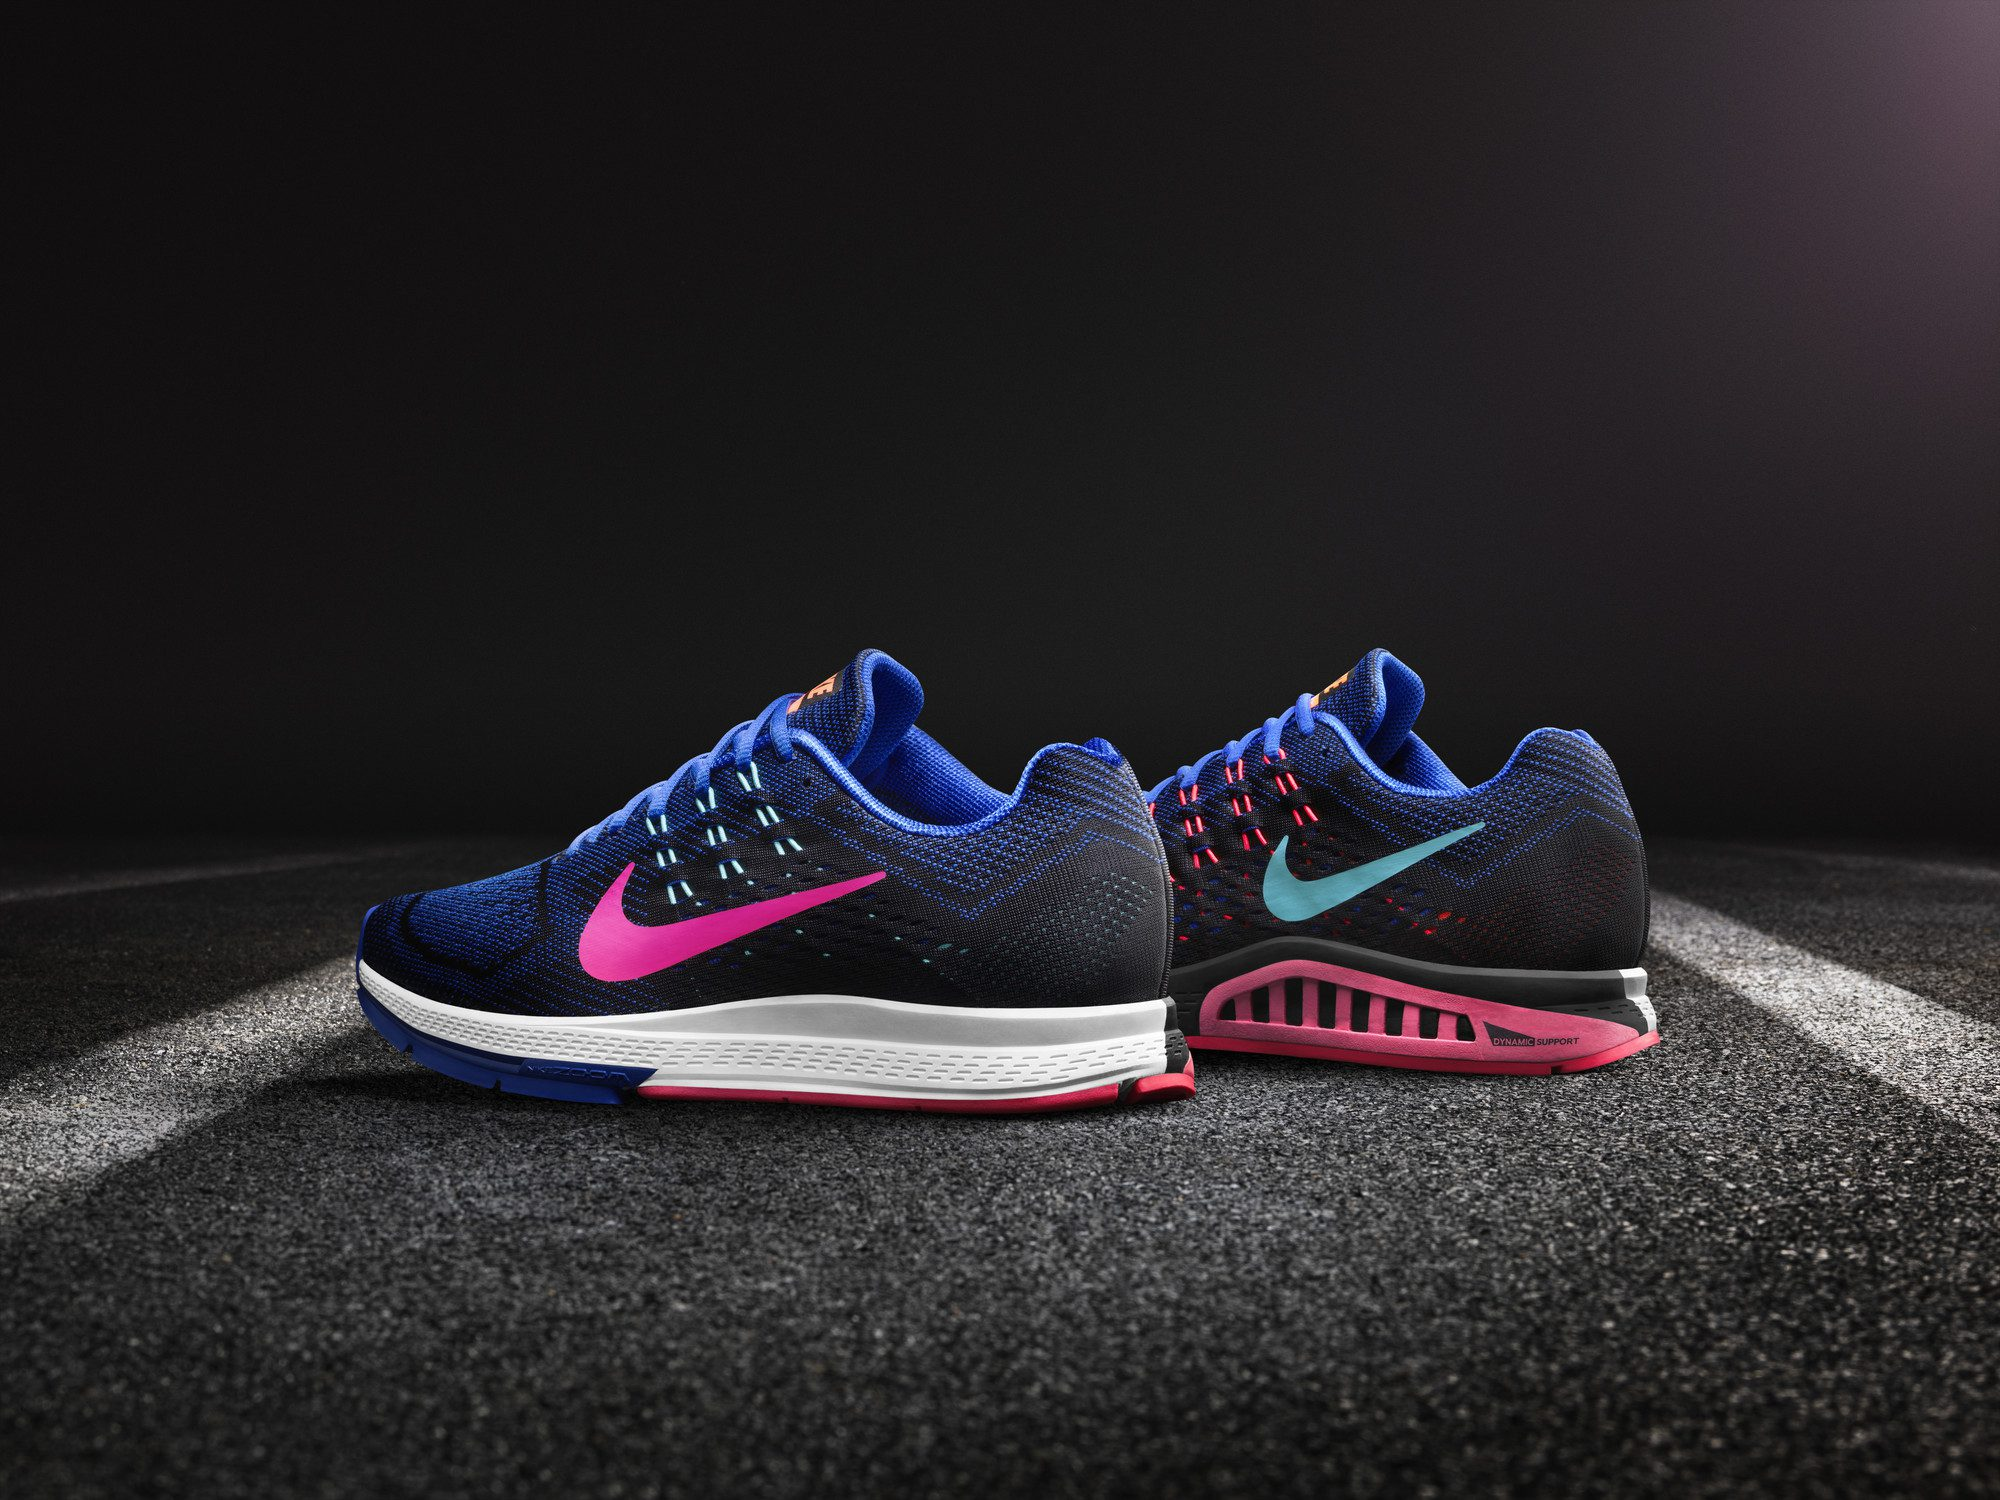 preschool nike air zoom structure 18 nike zoom structure 8 Cheap Nike Air Max Shoes | 1, 90, 95, 97, 98 ...